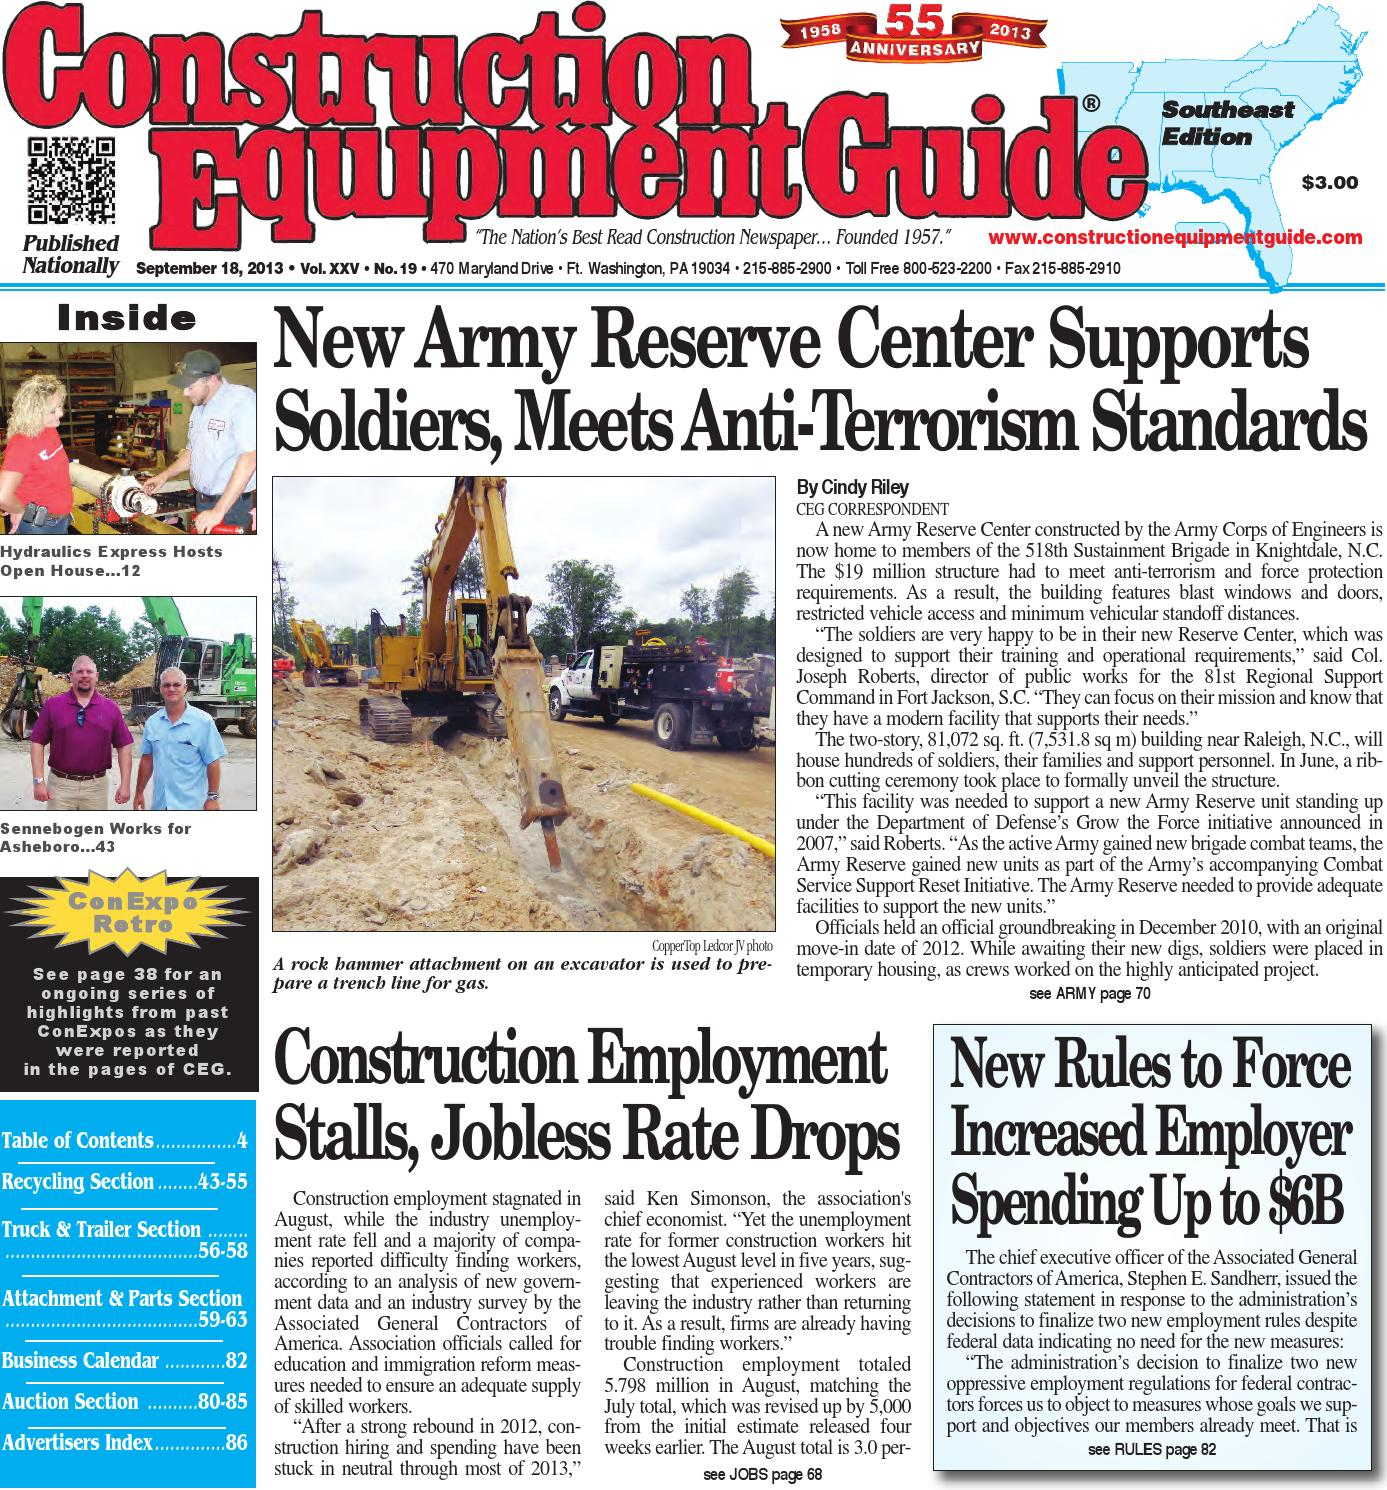 Southeast 19 2013 by Construction Equipment Guide - Issuu a32f2a463e